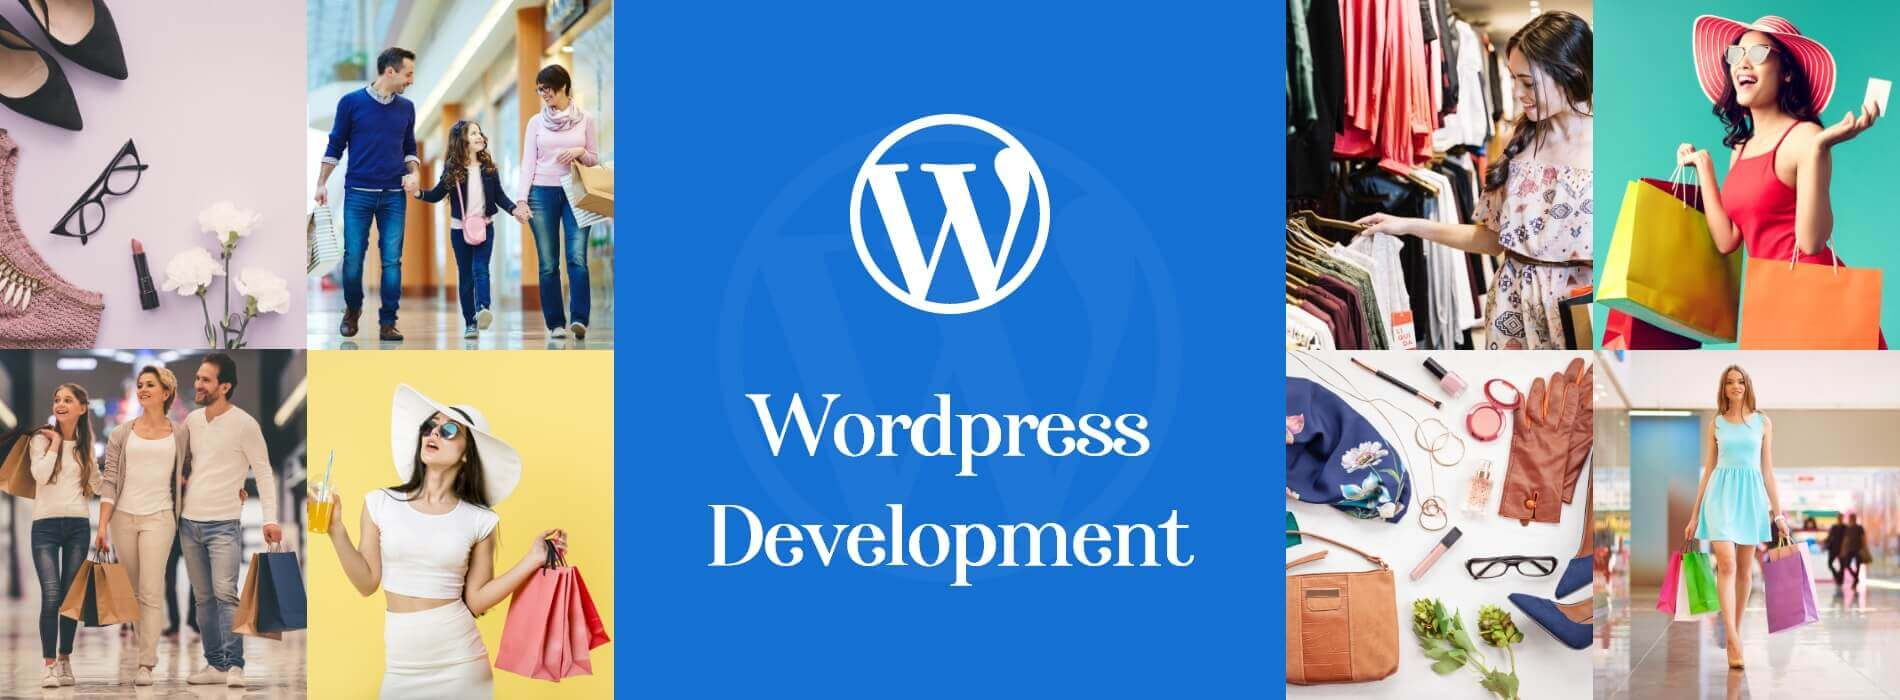 Why WordPress Is One of the Best Platforms for Website Development